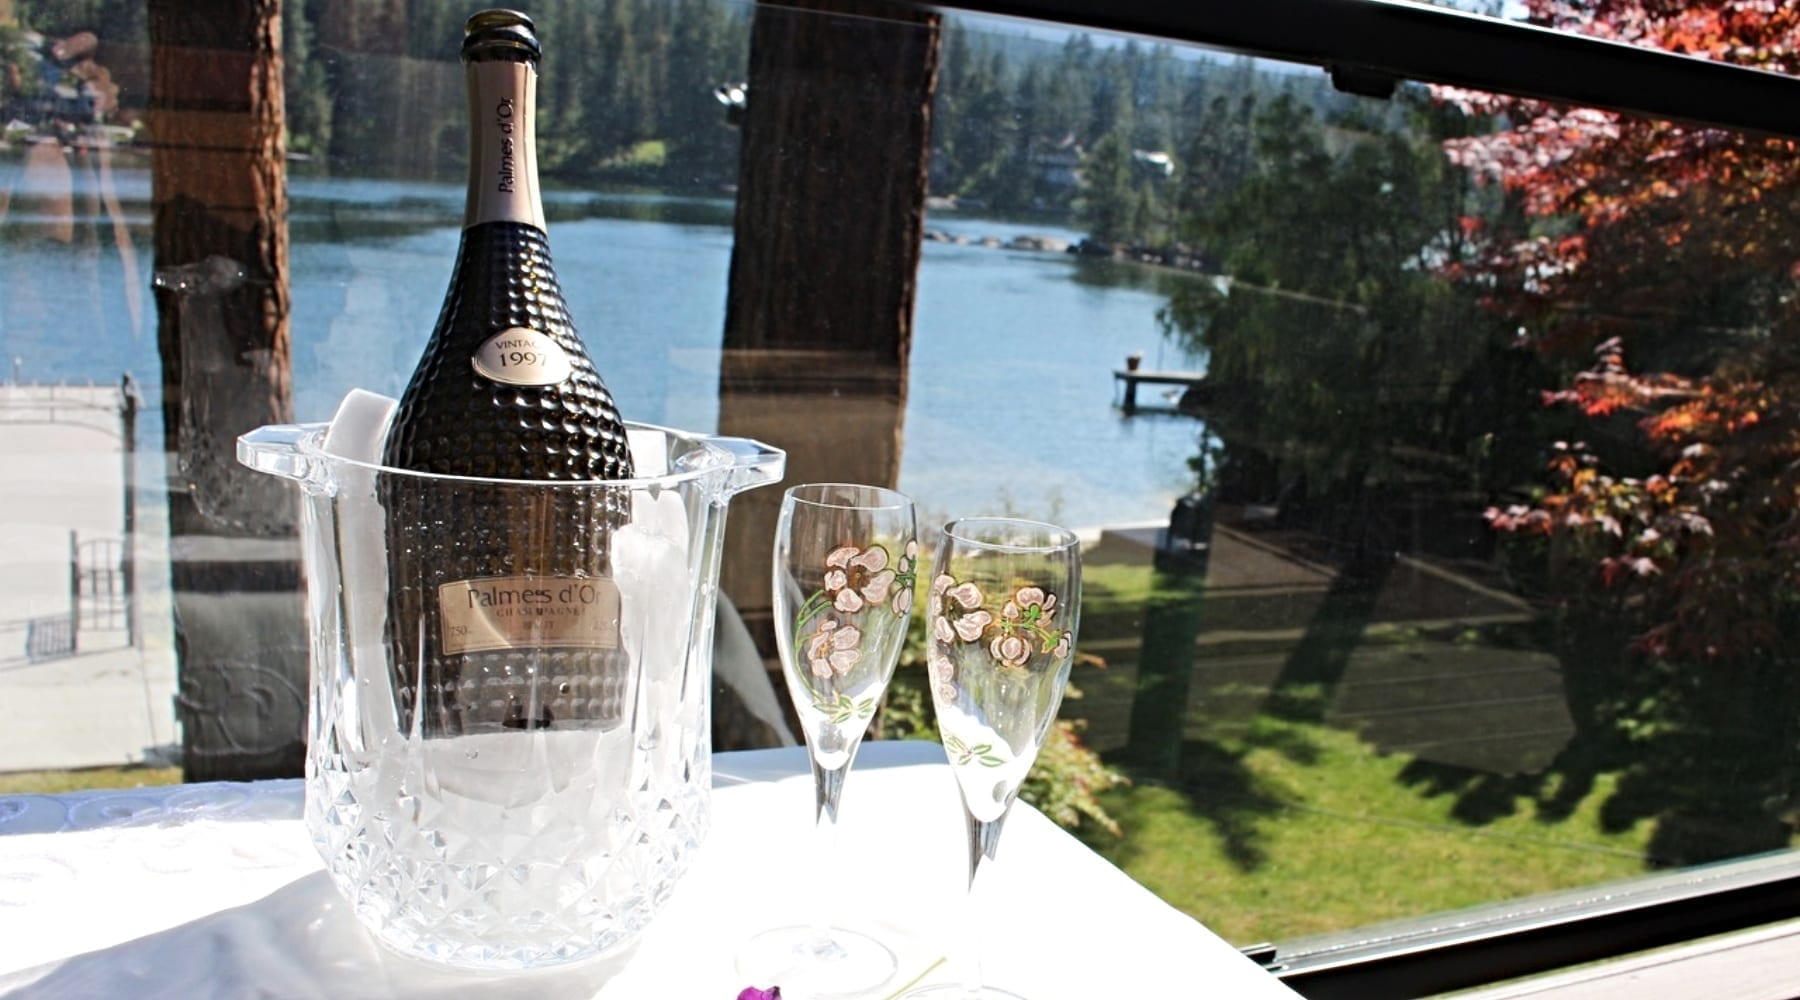 Champagne bottle on table next to two glasses